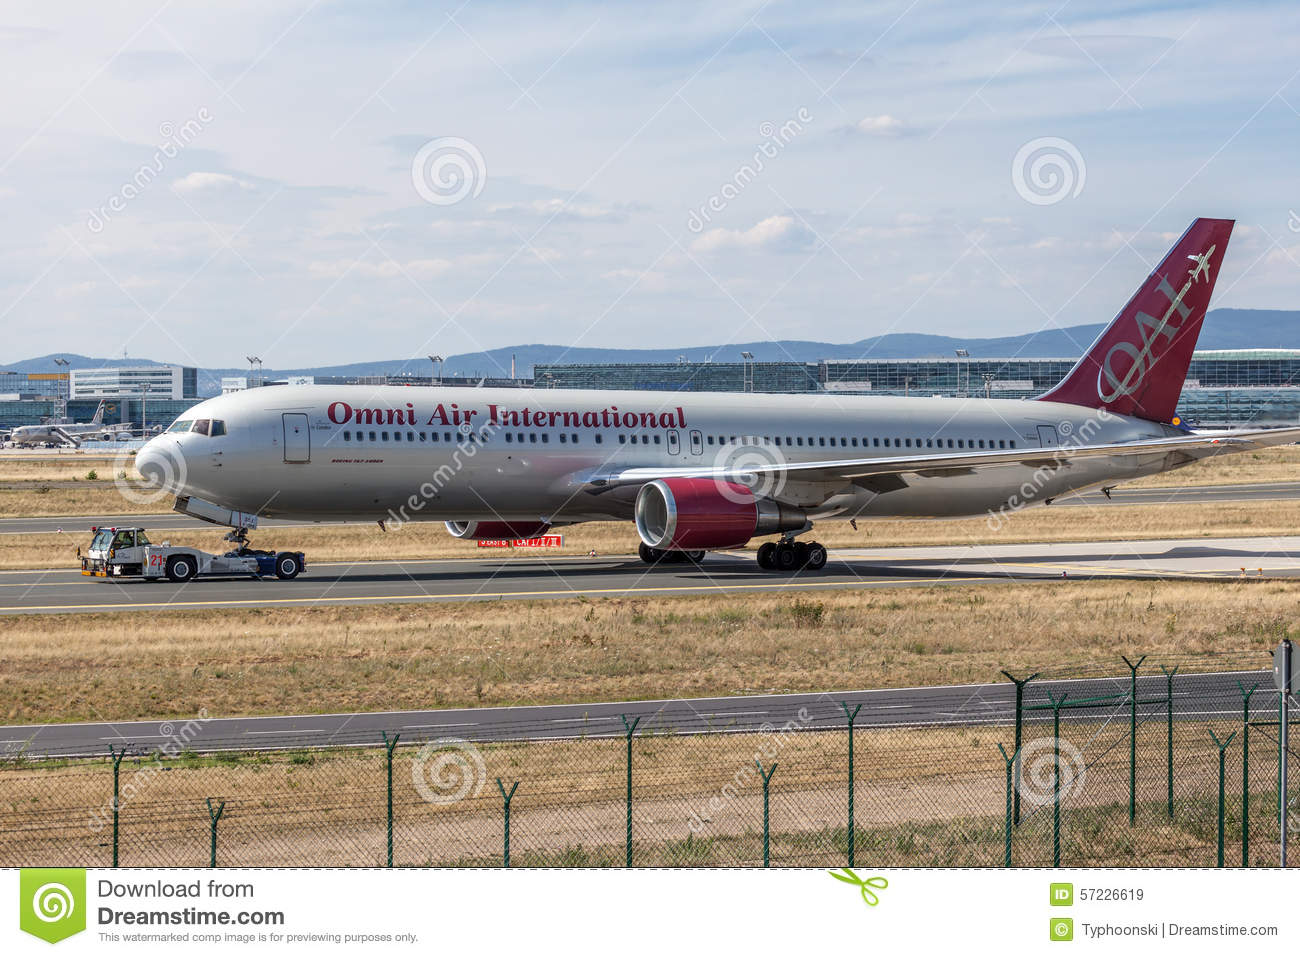 Omni Air International Boeing 767-300 ER